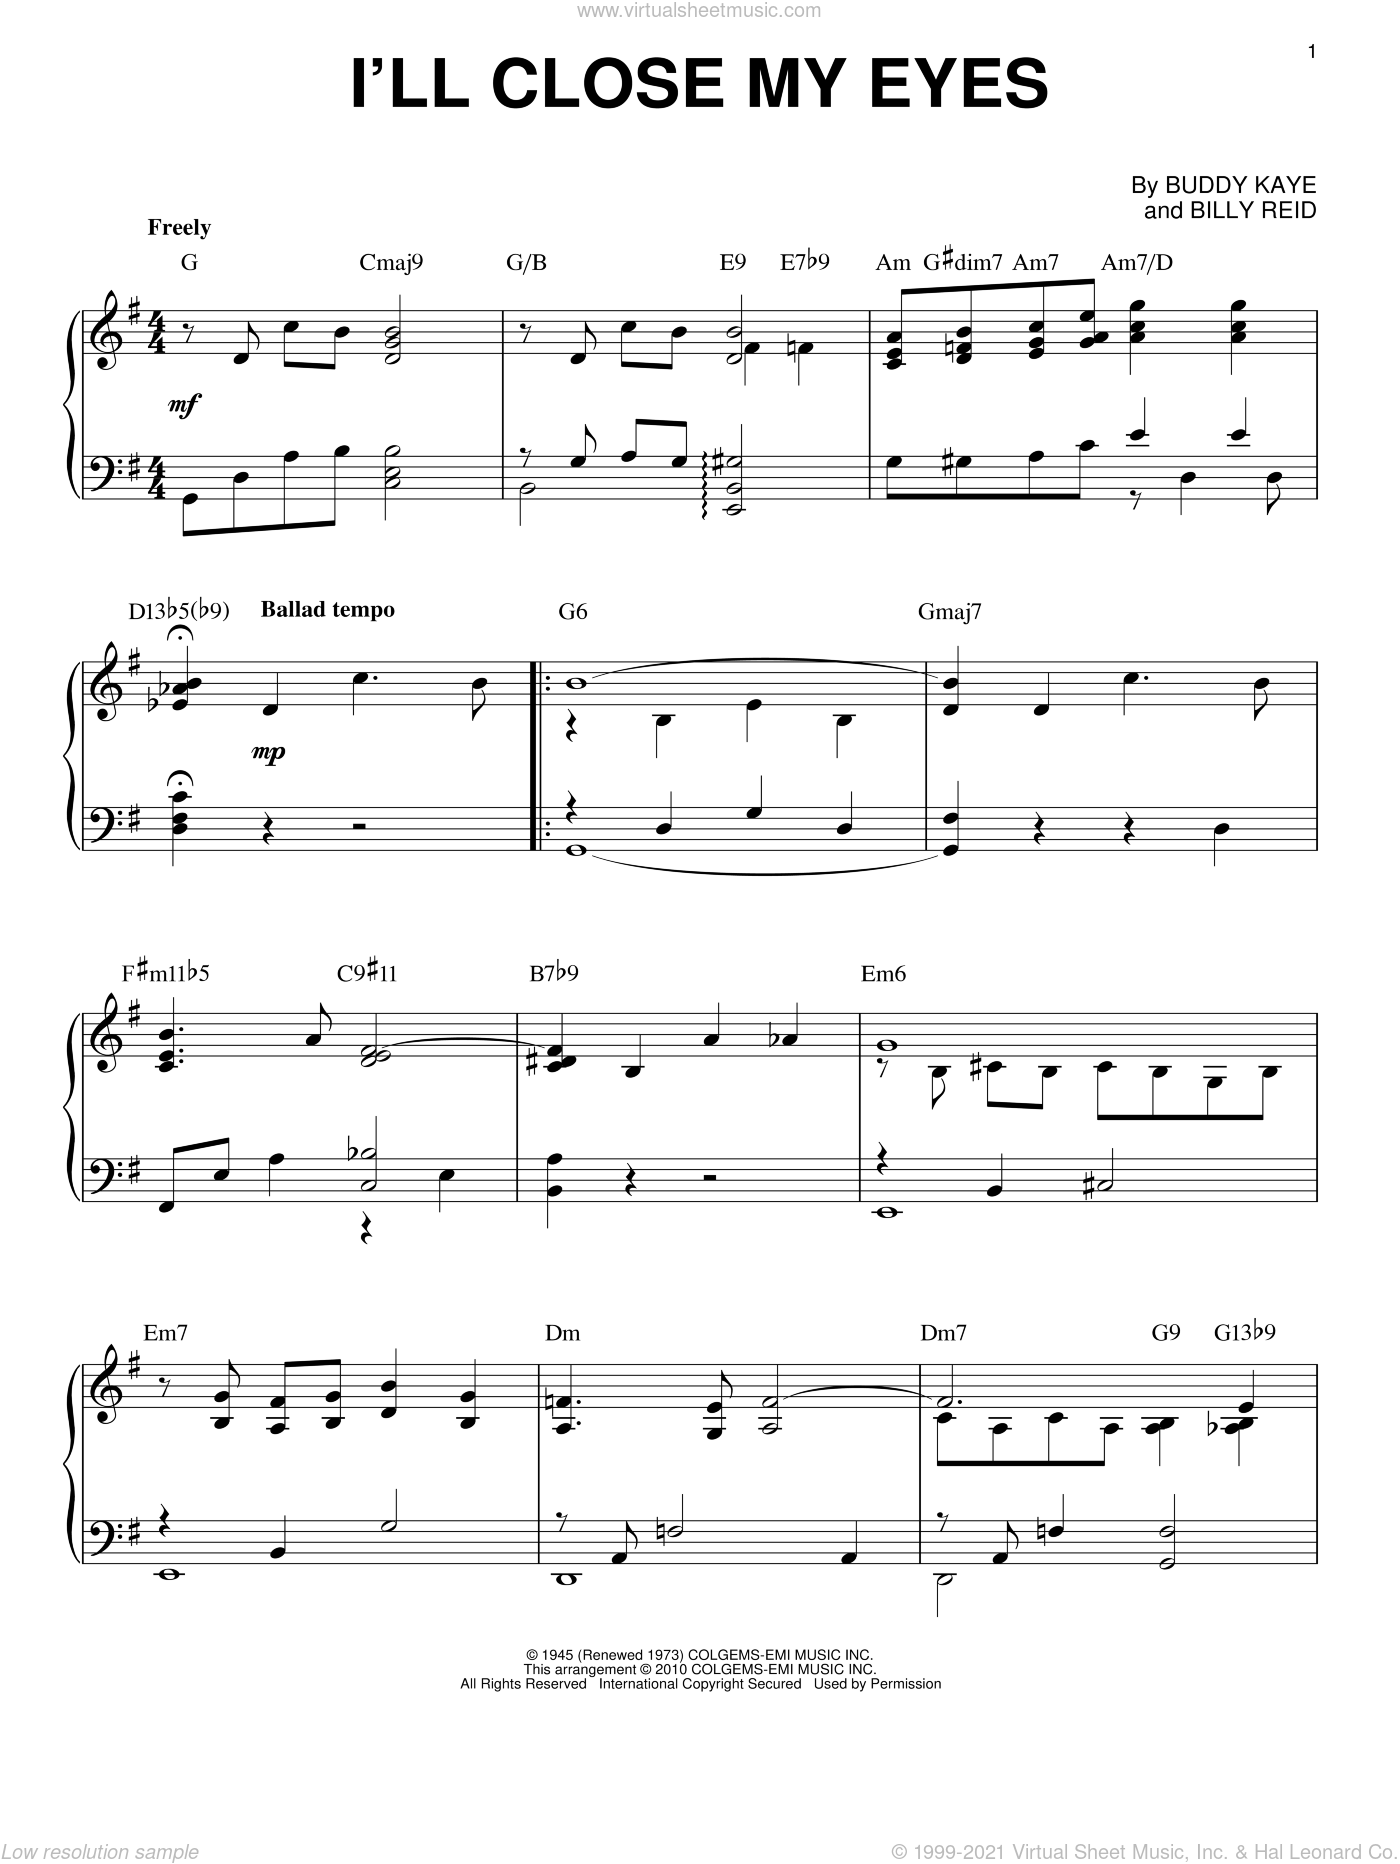 I'll Close My Eyes sheet music for piano solo by Buddy Kaye